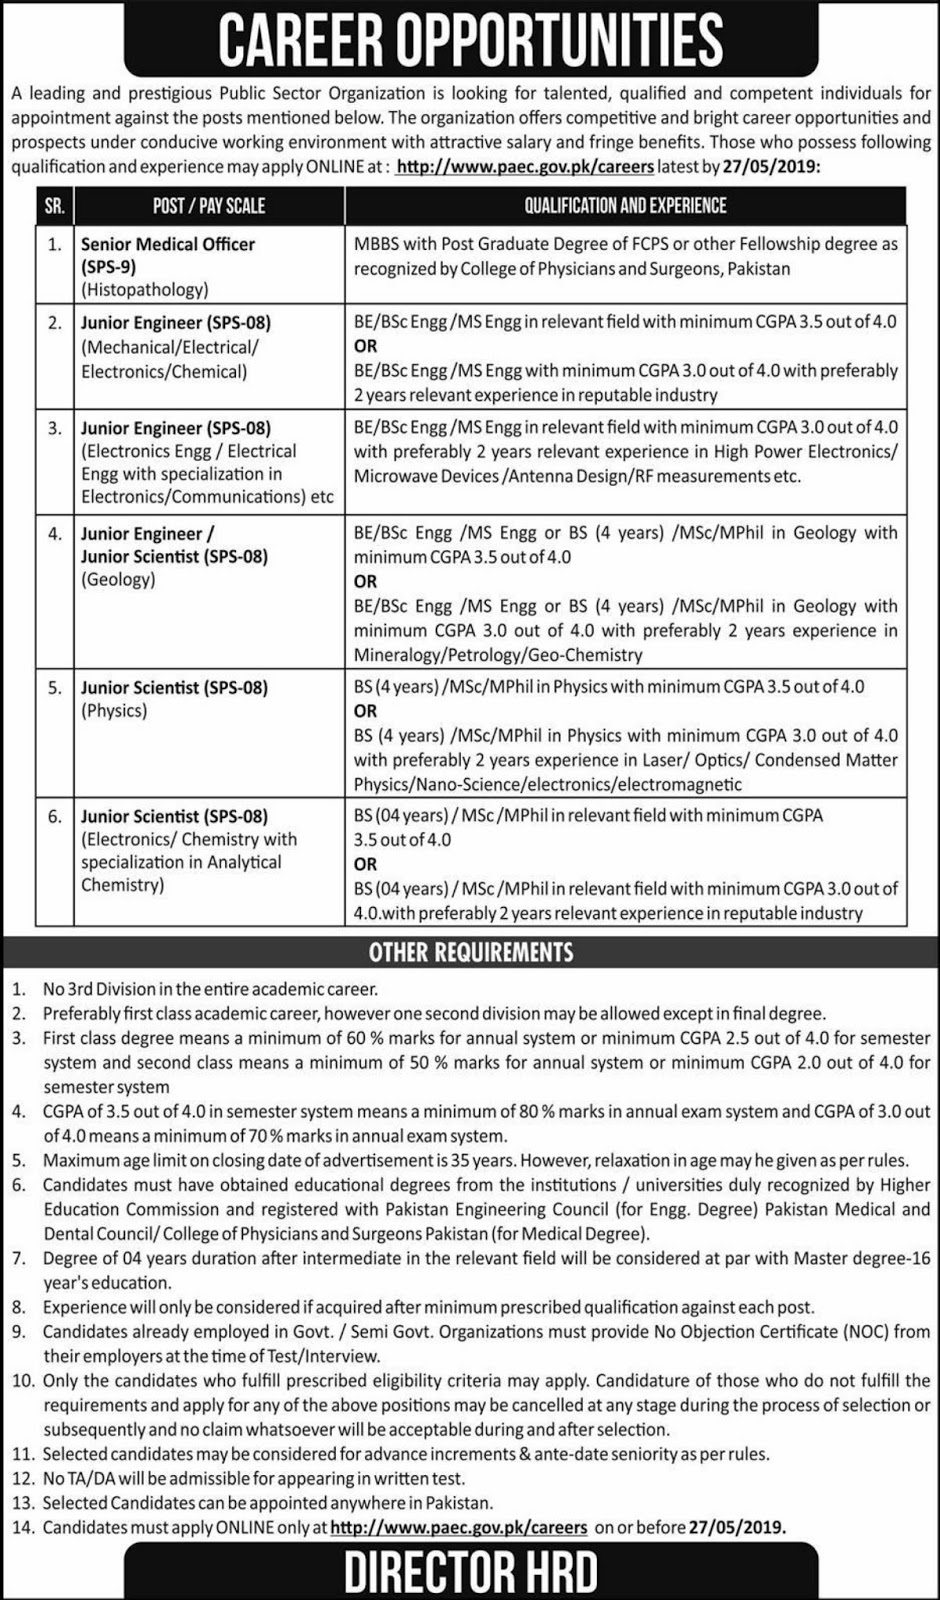 Pakistan Atomic Energy Commission PAEC Jobs 2019